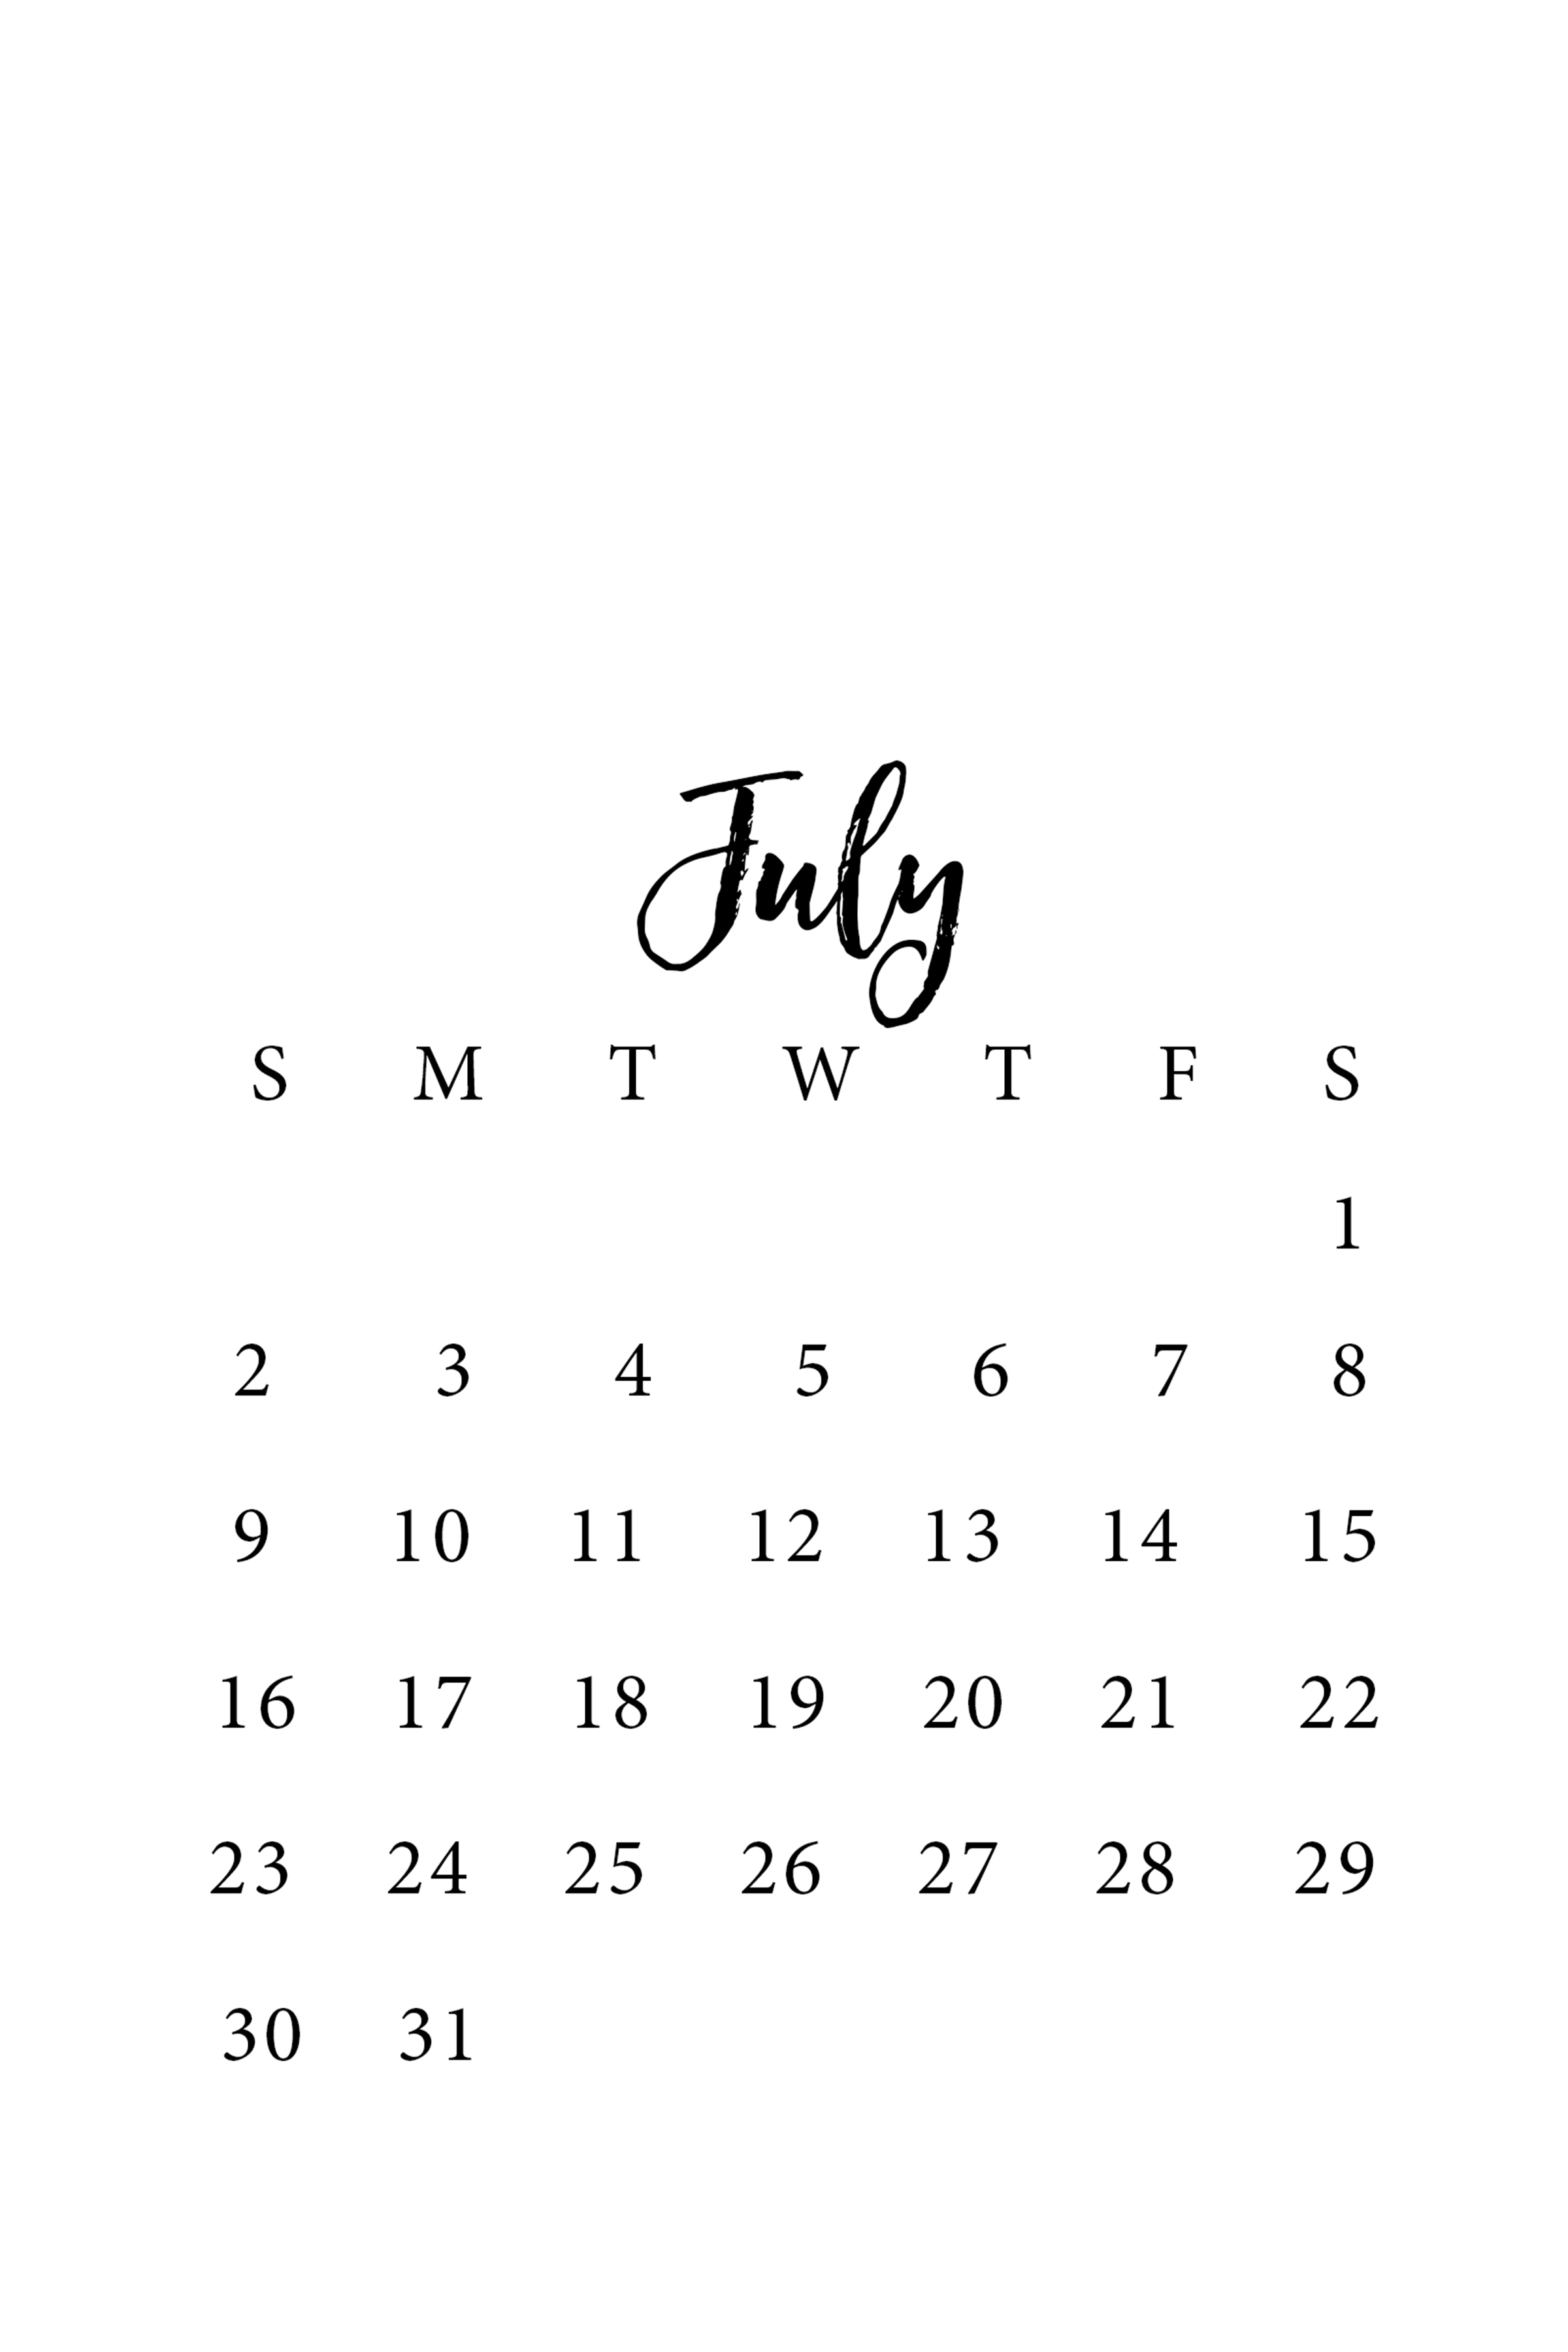 Save each calendar template onto your phone. (On an iPhone, click the ...